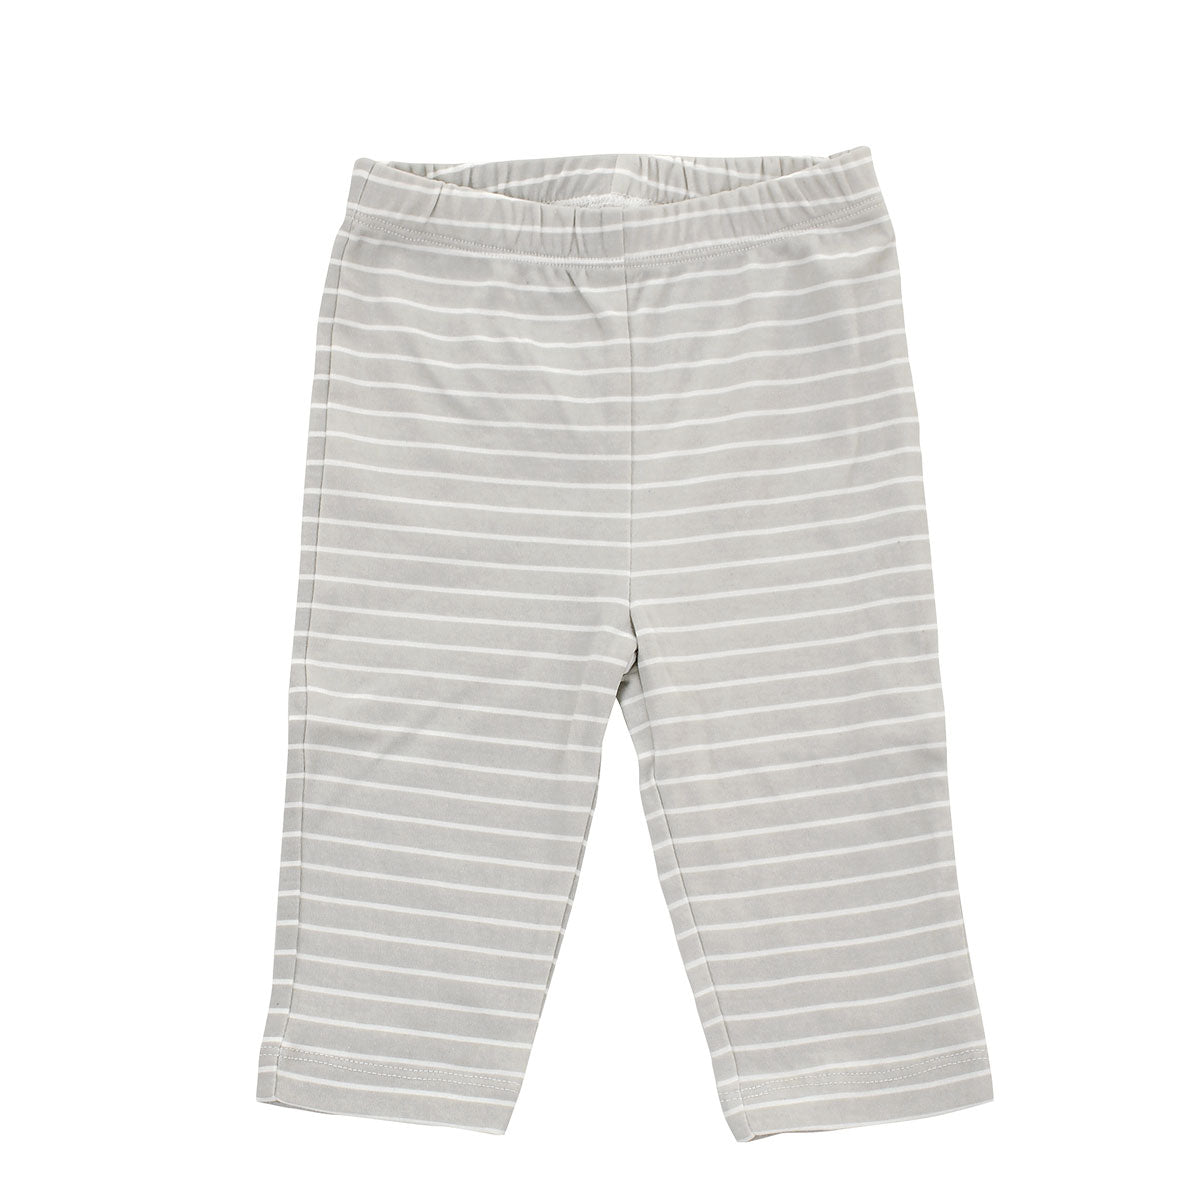 Organic Cotton Pullover Pant (Silver cloud stripe)